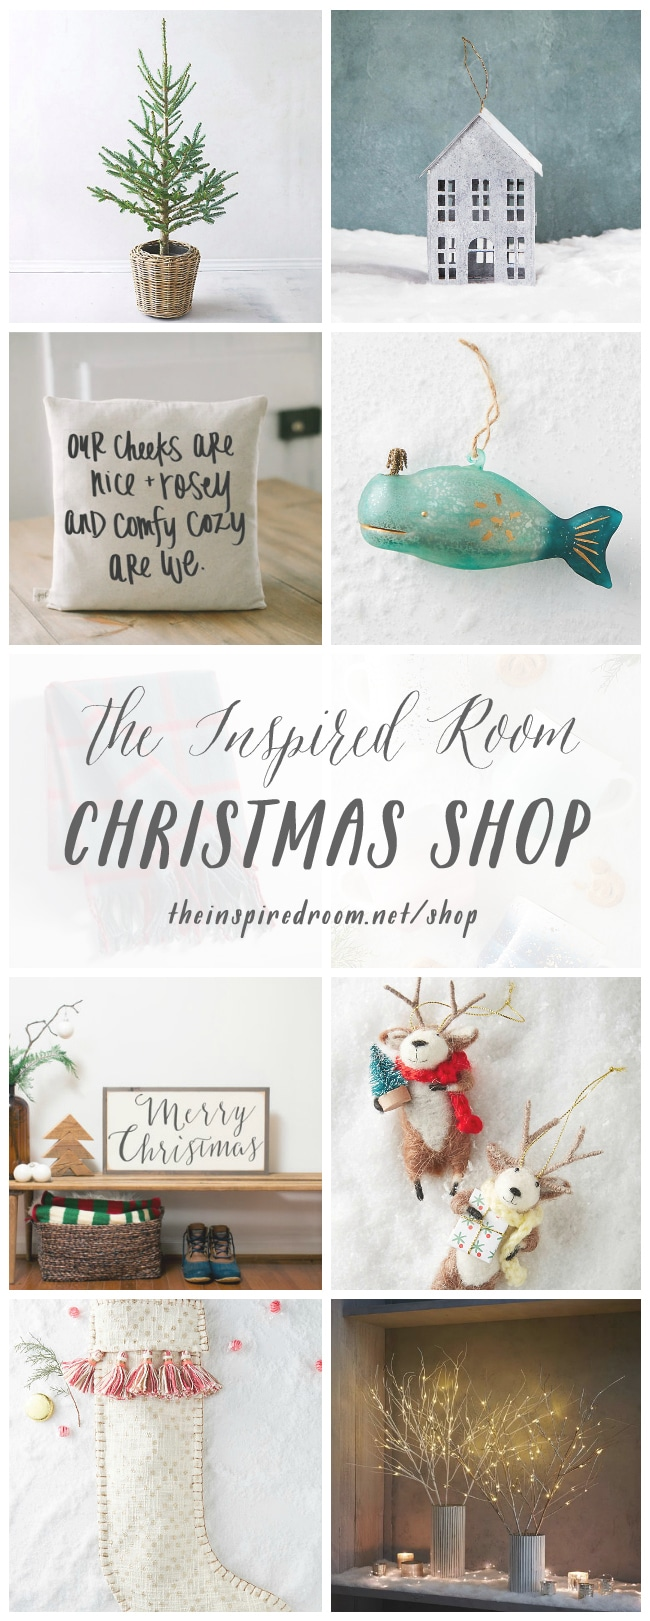 Shop here for the most adorable Christmas Decorations!